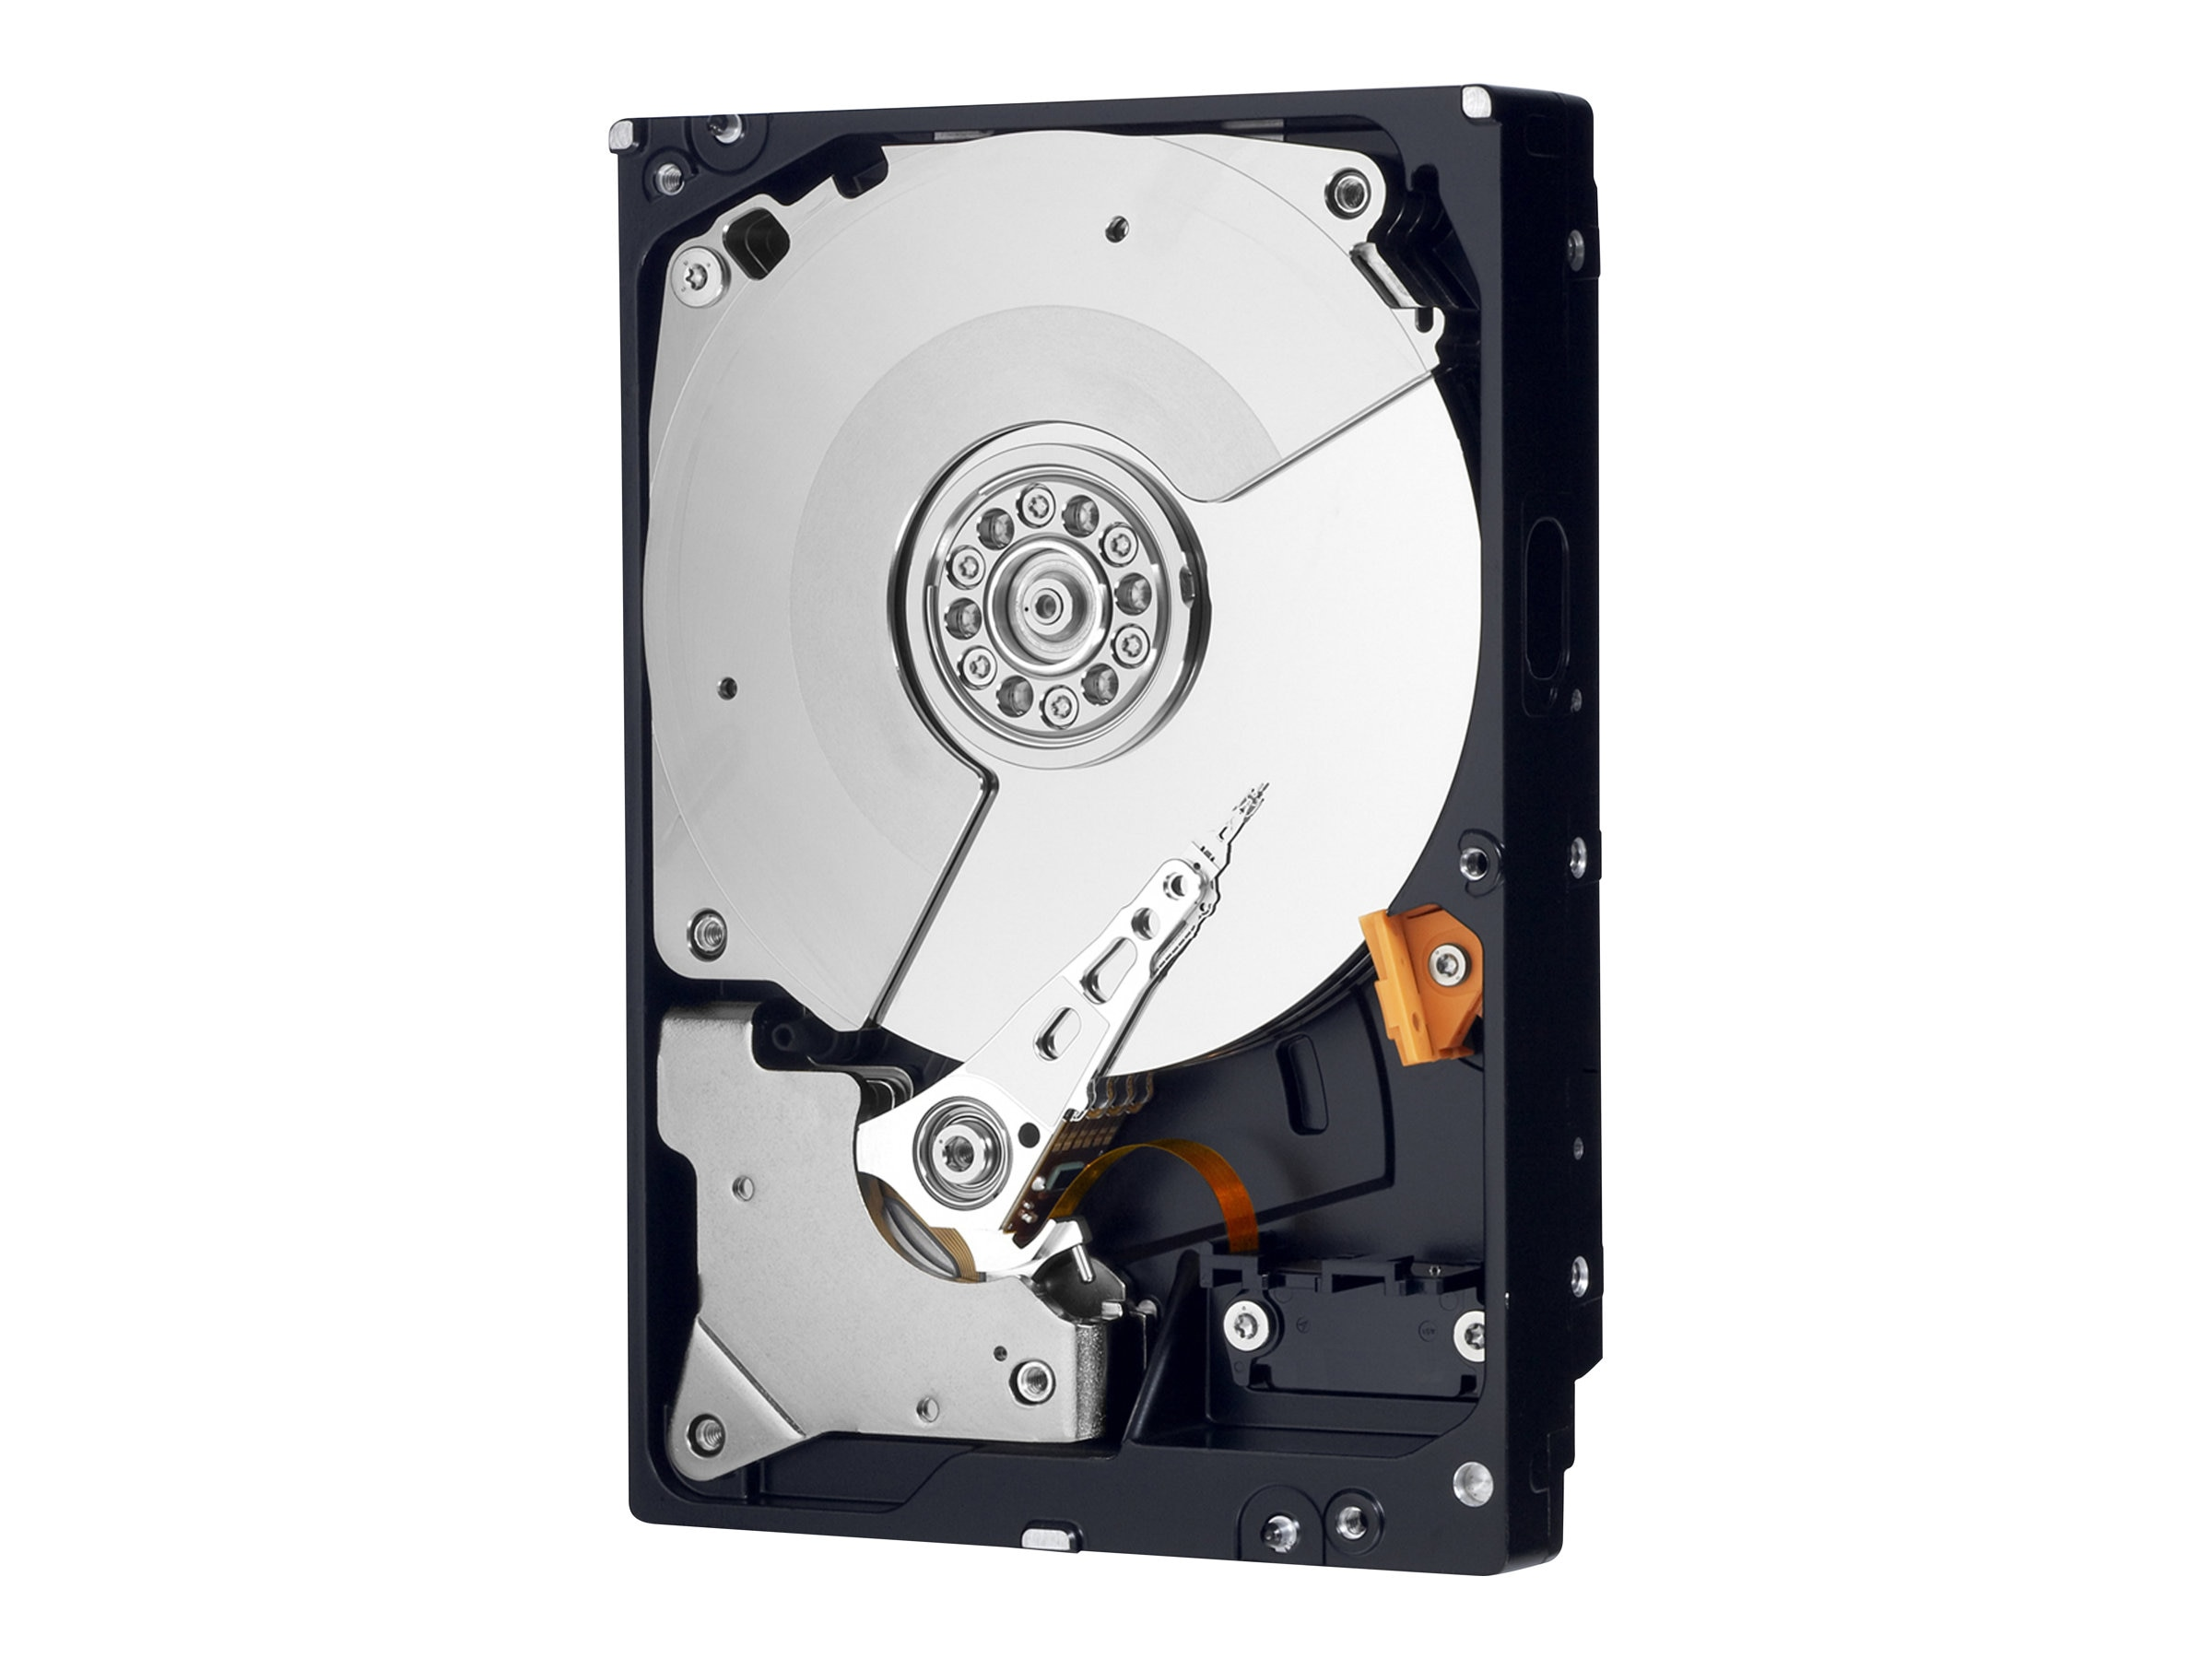 WD 500GB WD Caviar Black SATA 6Gb s 3.5 Internal Hard Drives - 64MB Cache (20-pack)